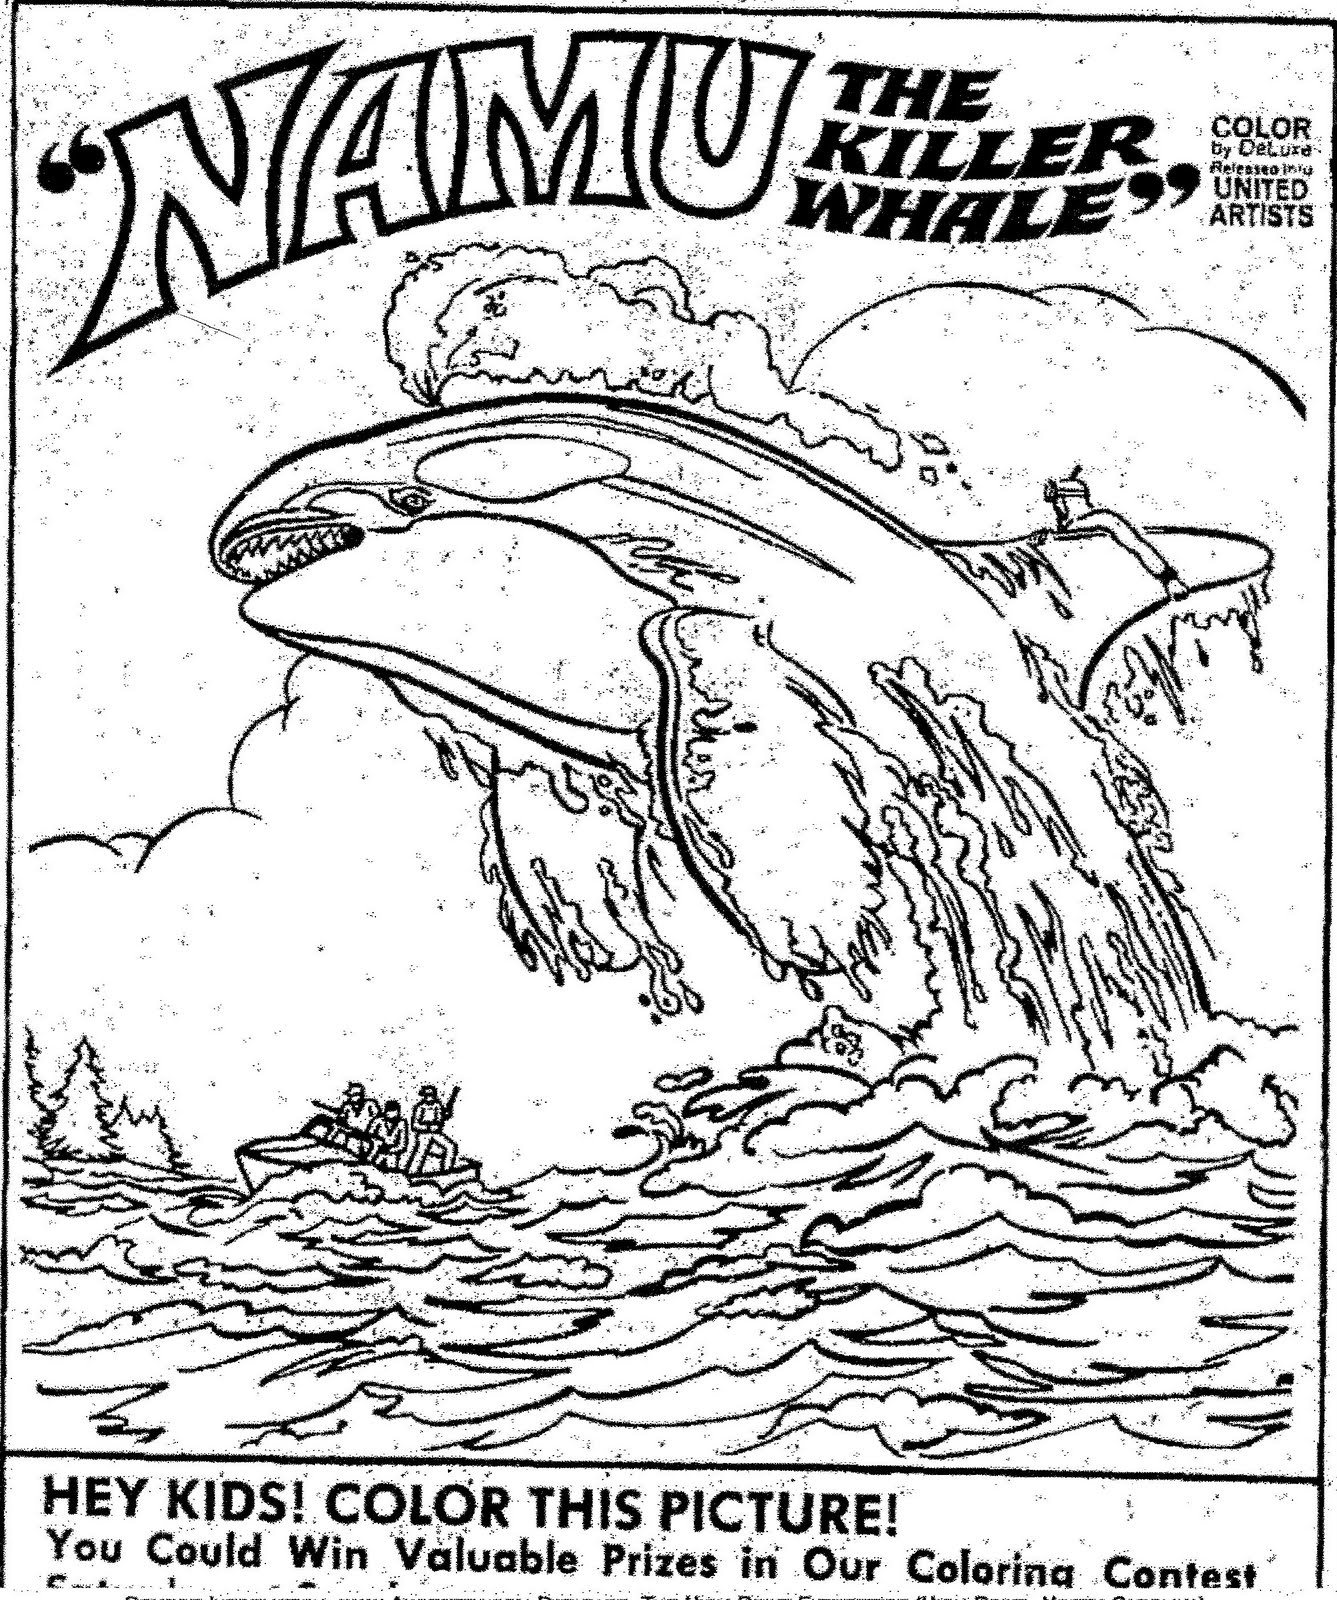 Coloring Pages Orca Whale Coloring Pages orca whale coloring page az pages killer pictures free pages